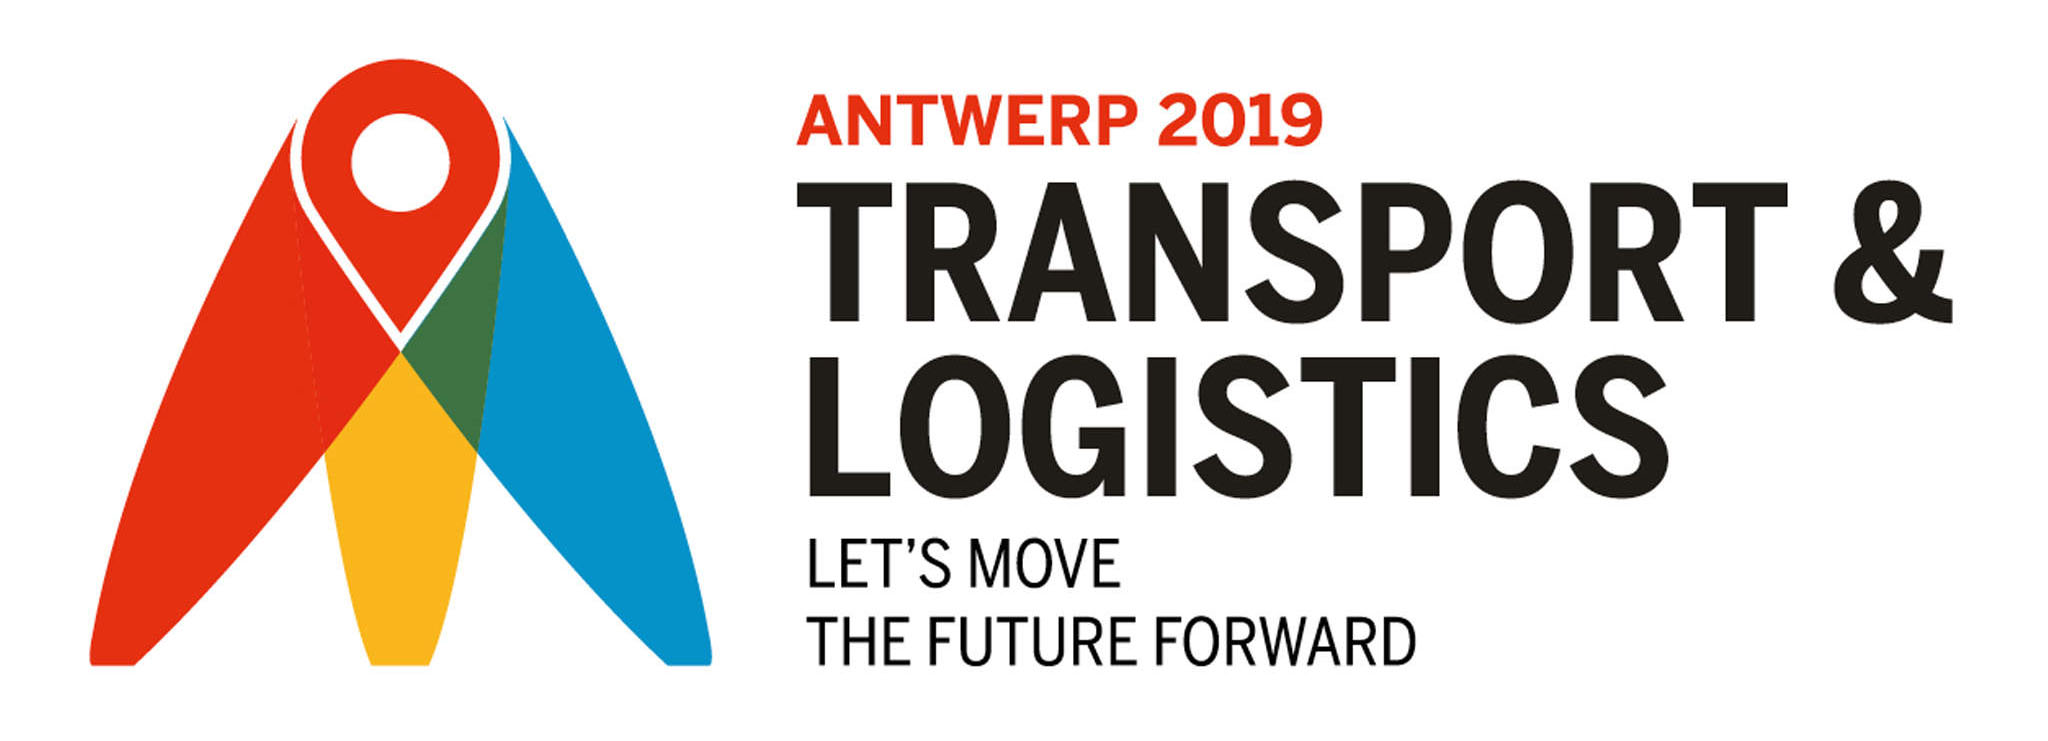 Transport & Logistics 2019